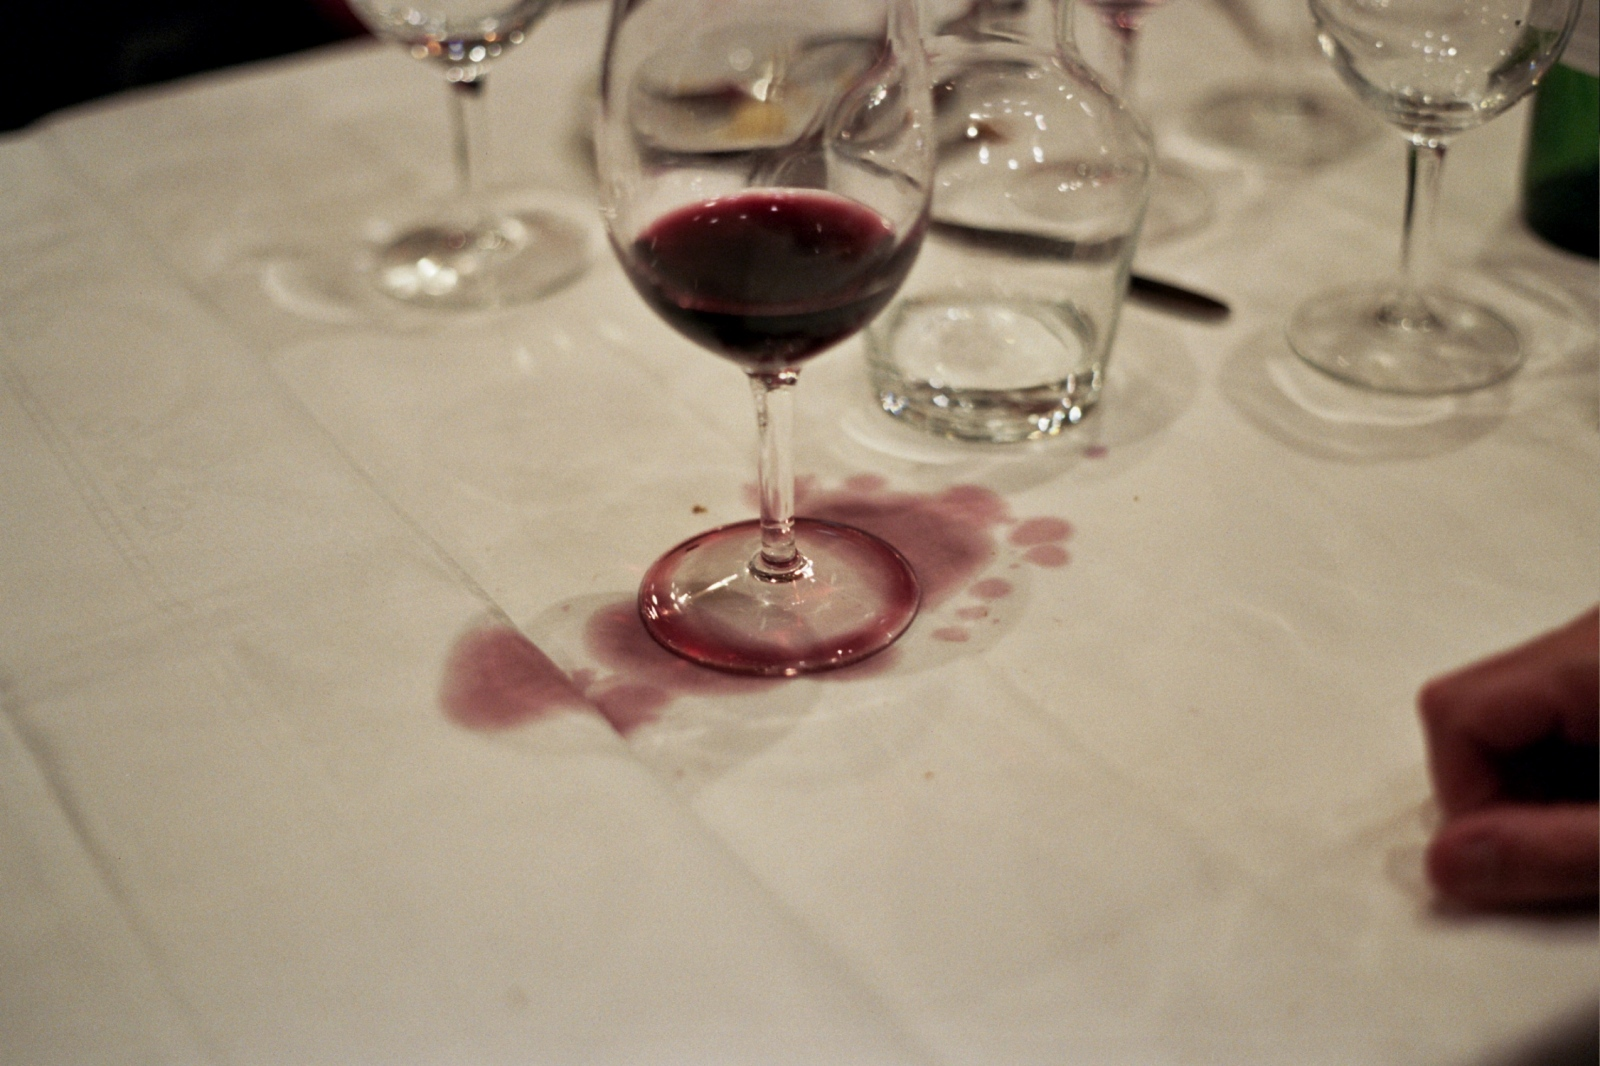 Spilled wine after dinner, Paris, France